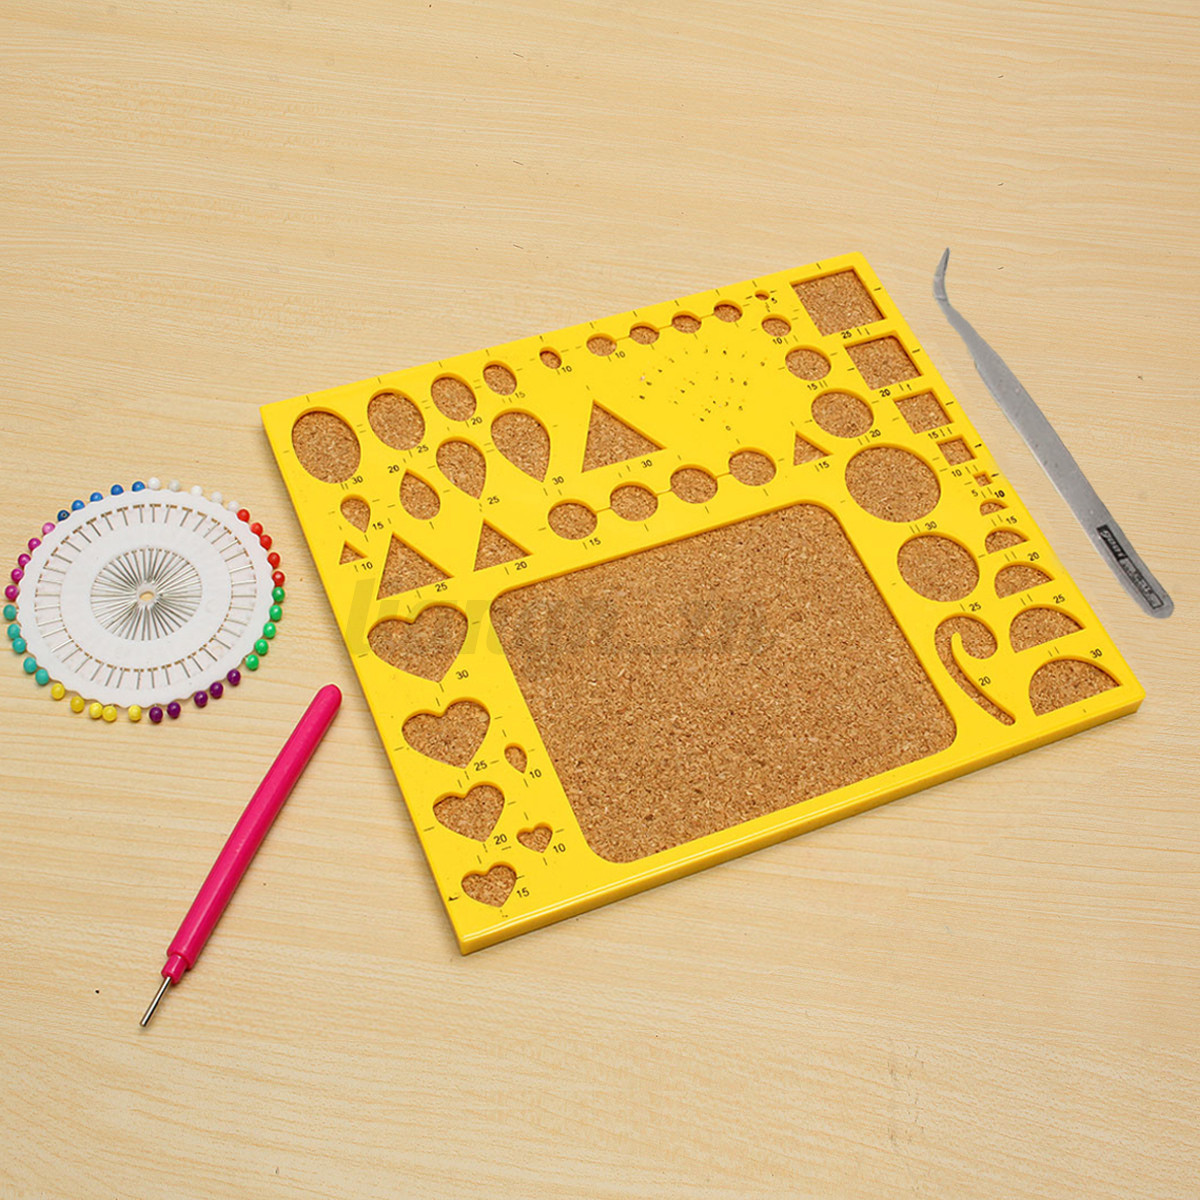 how to use quilling board with pins